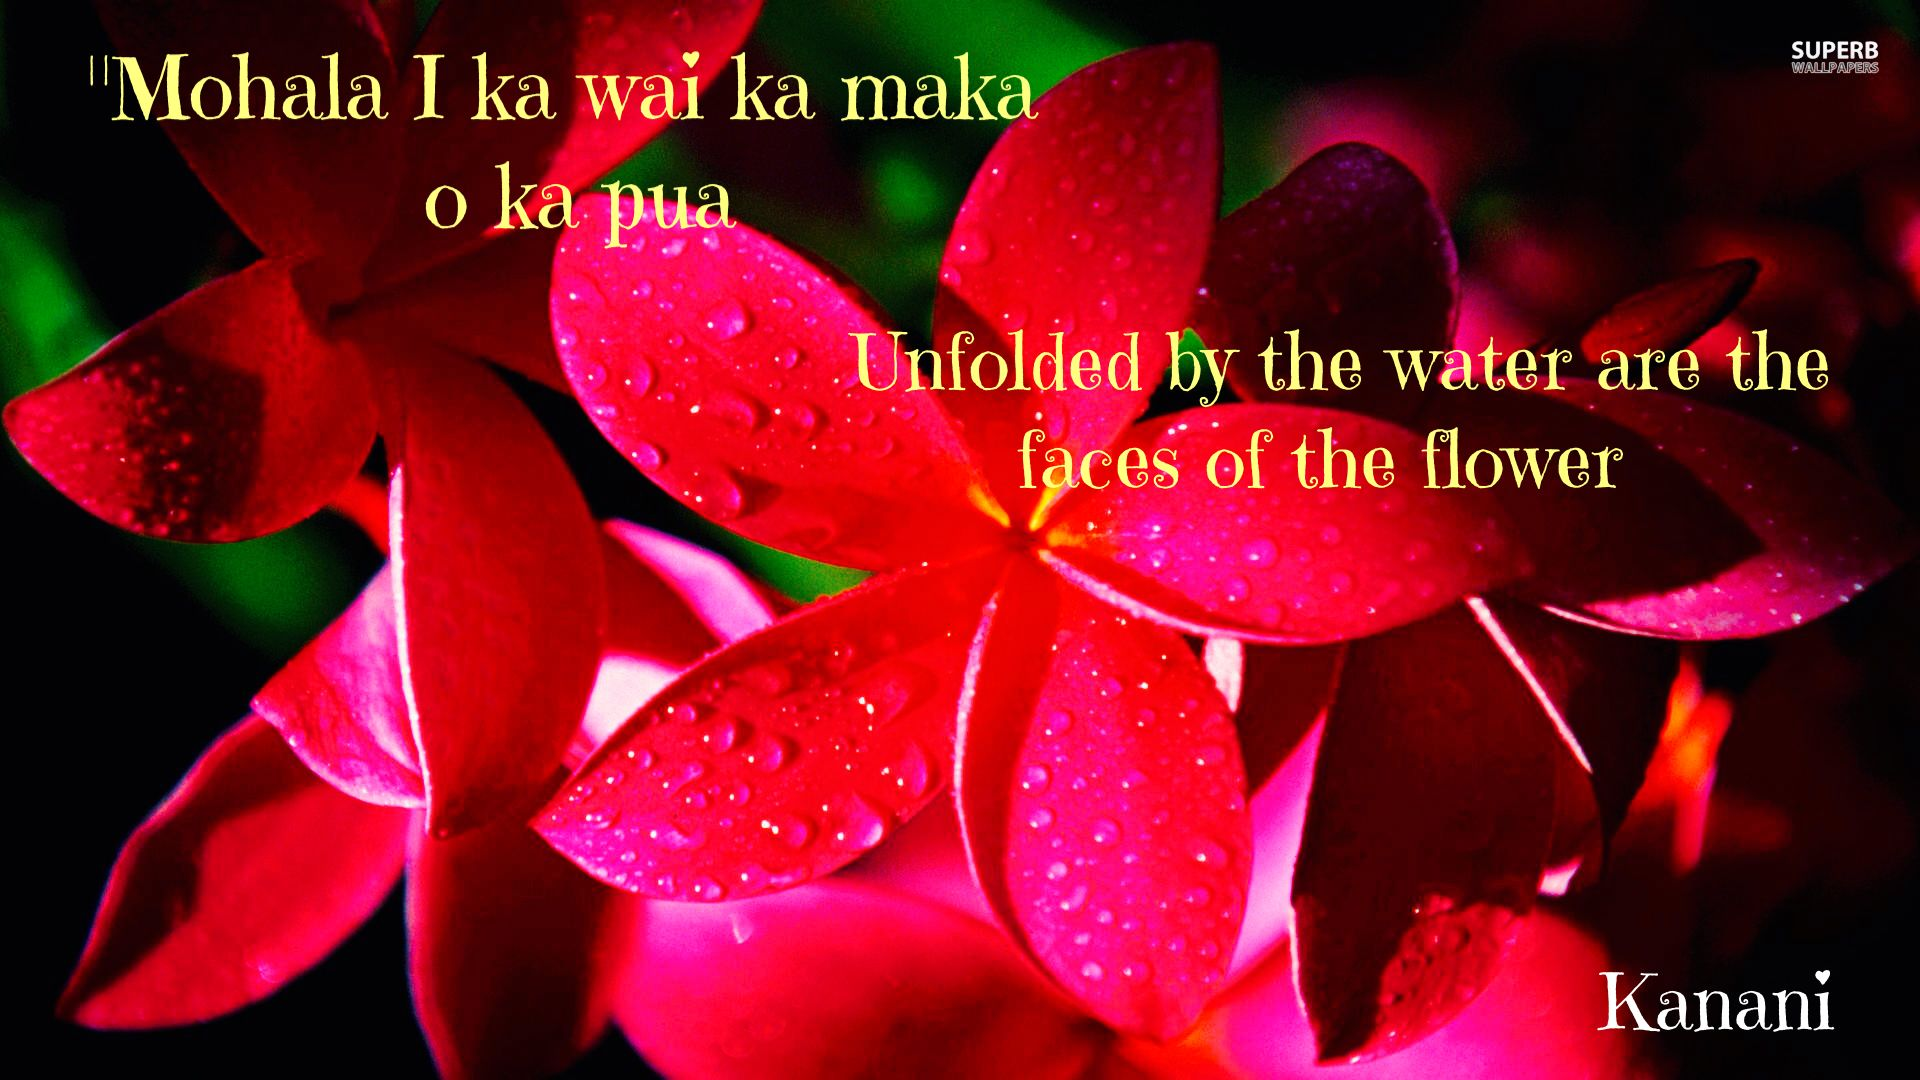 Hawaiian proverb hawaiian proverbs and sayings pinterest beautiful flowers wallpapers for desktop red beautiful flower hd wallpaper hd x 1080 677 kb jpeg x izmirmasajfo Gallery